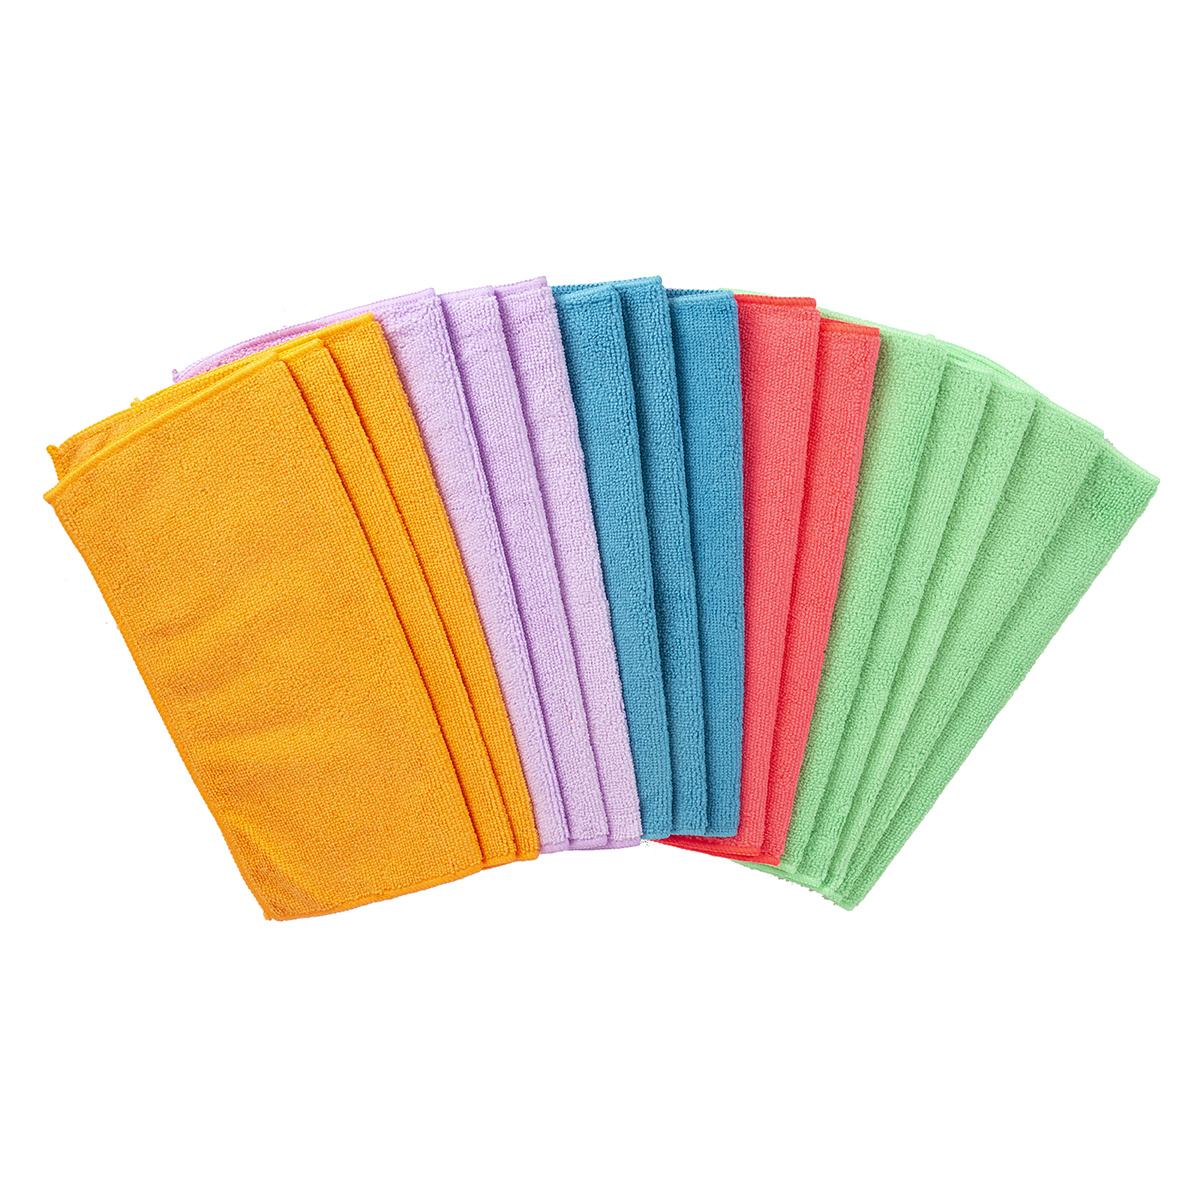 Home Ease Microfiber Kitchen Towel Assorted Colors